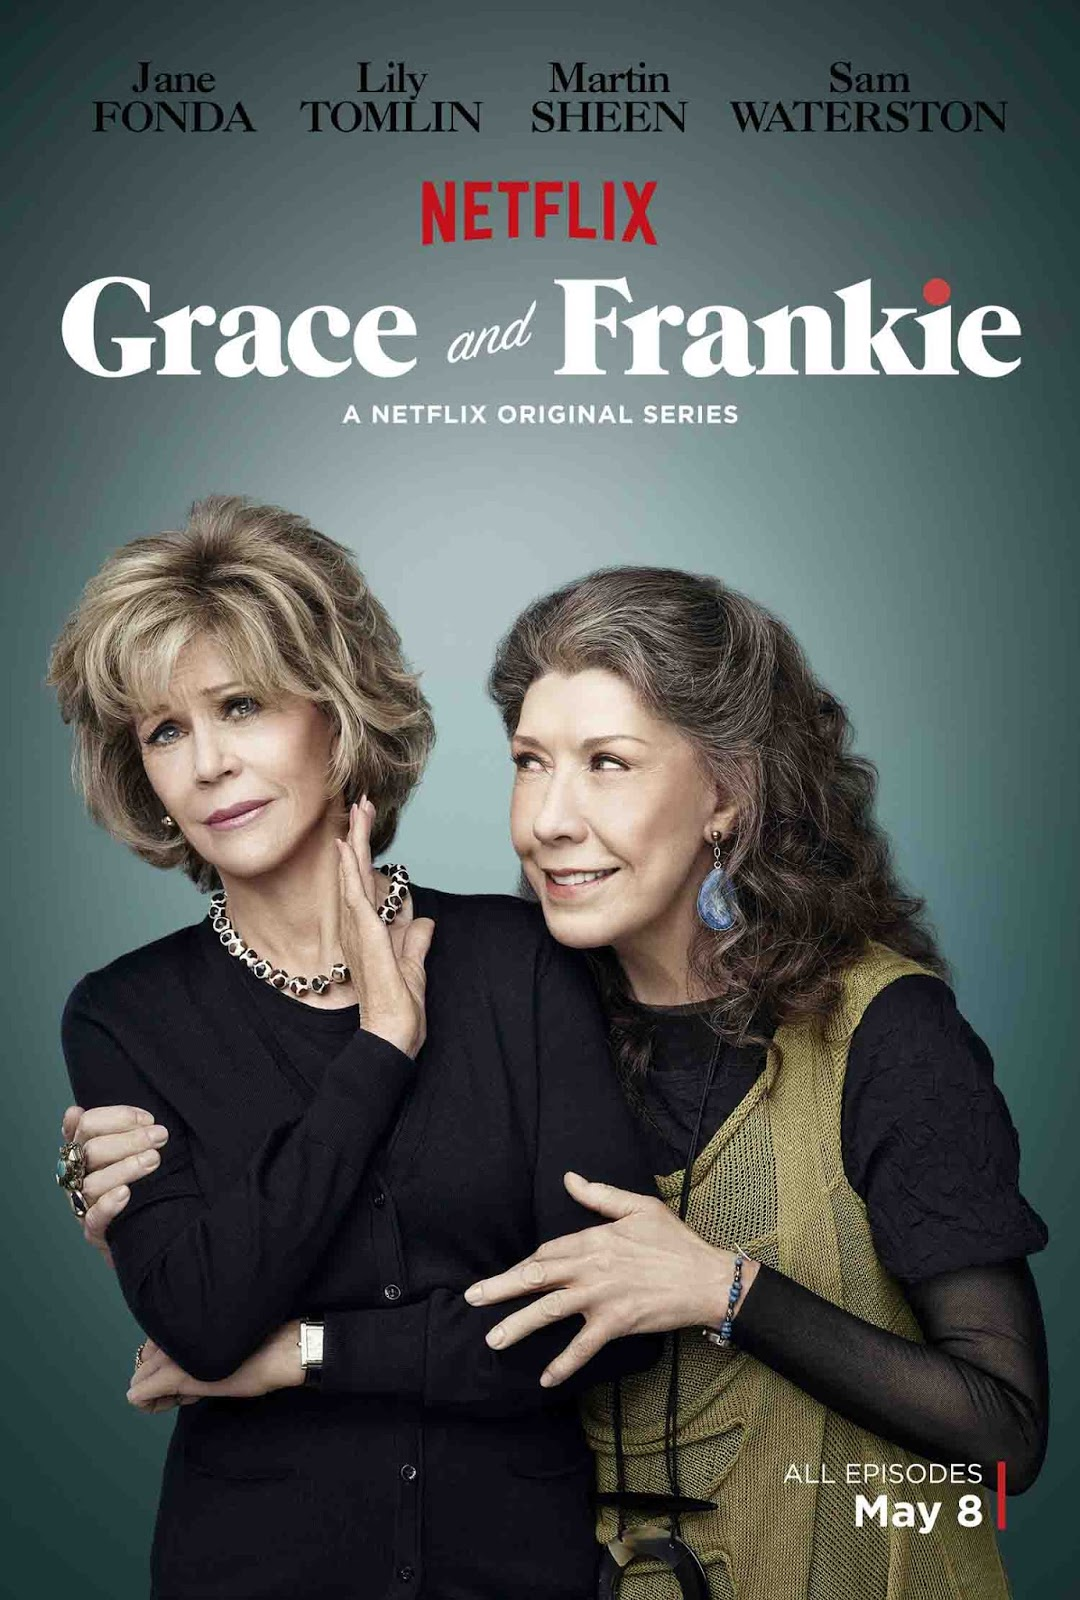 Grace and Frankie 1ª Temporada Torrent - WEBRip 720p Dual Áudio (2015)